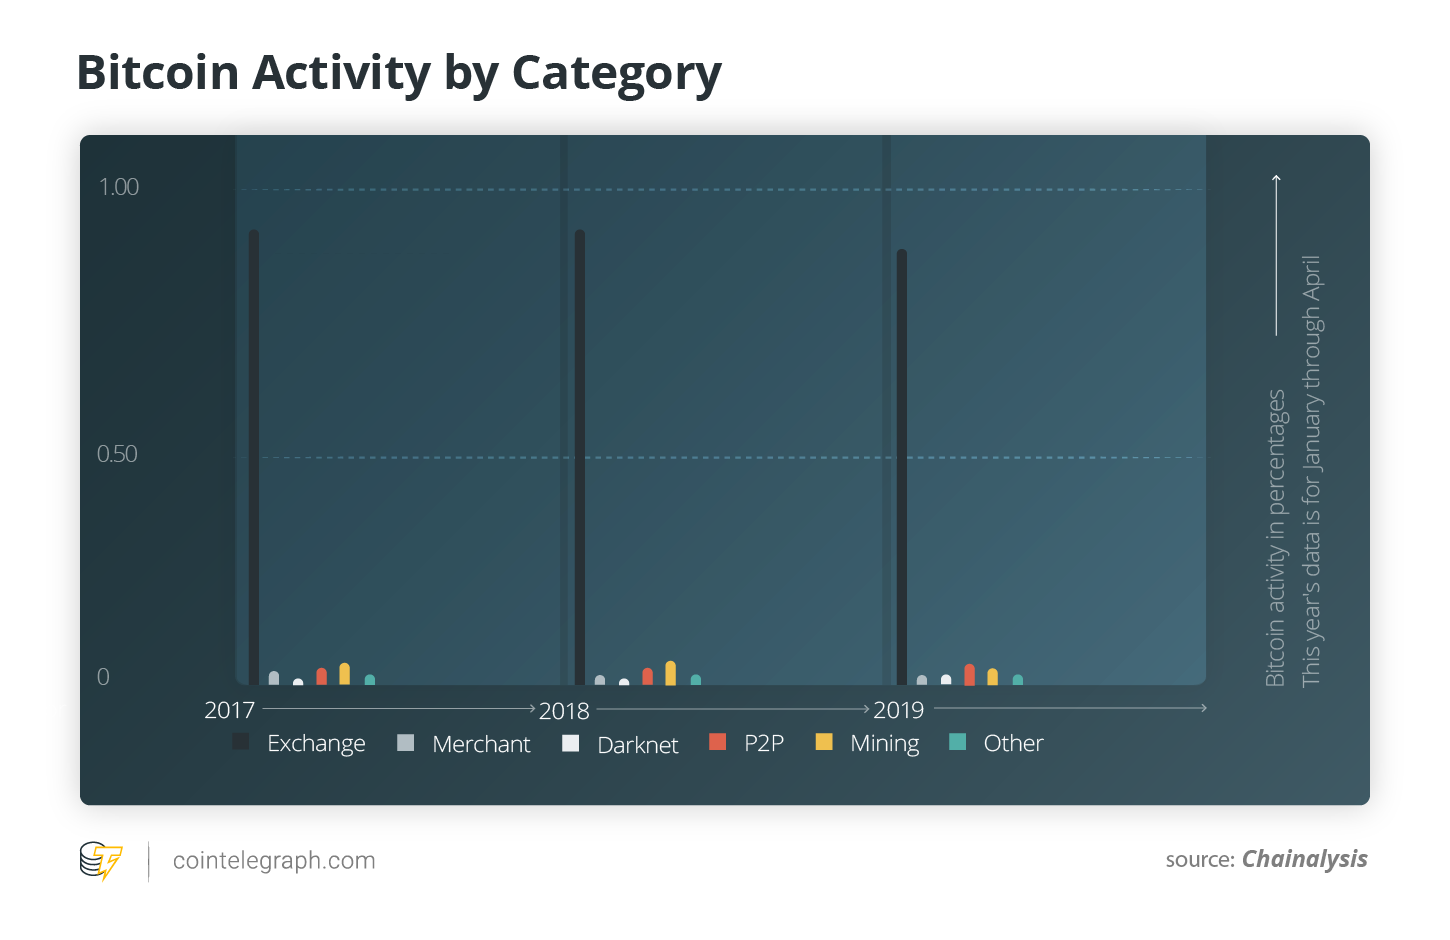 Bitcoin Activity by Category